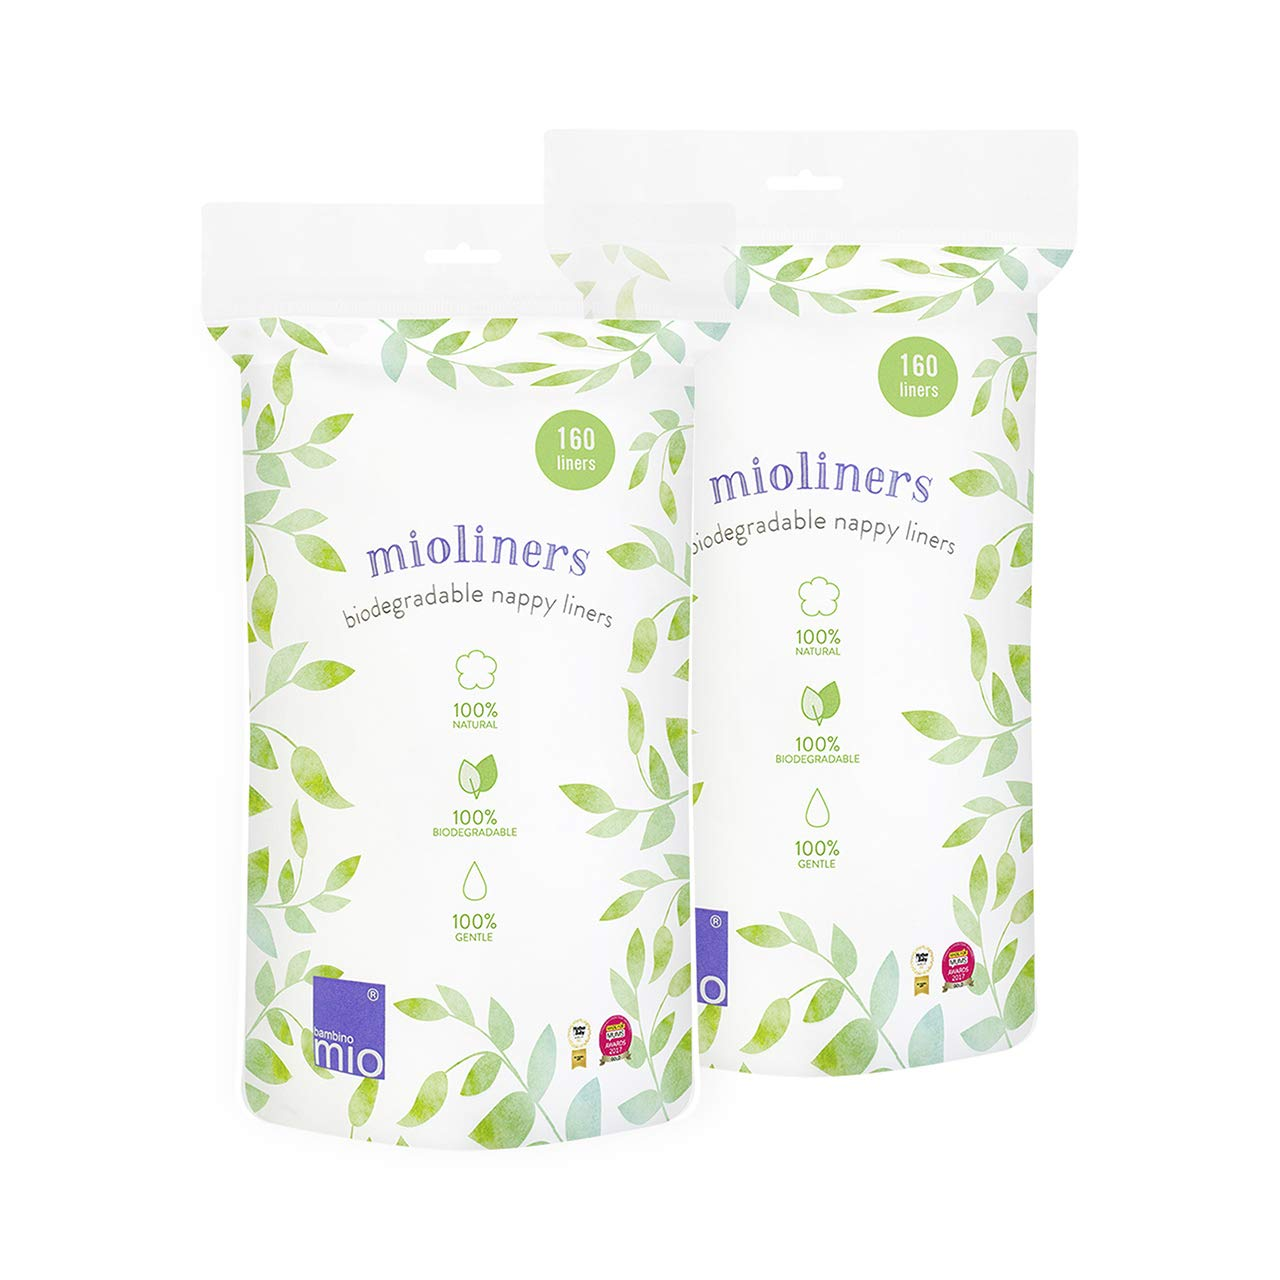 Bambino Mio, Mioliners (Biodegradable Diaper Liners), 2 Pack by Bambino Mio